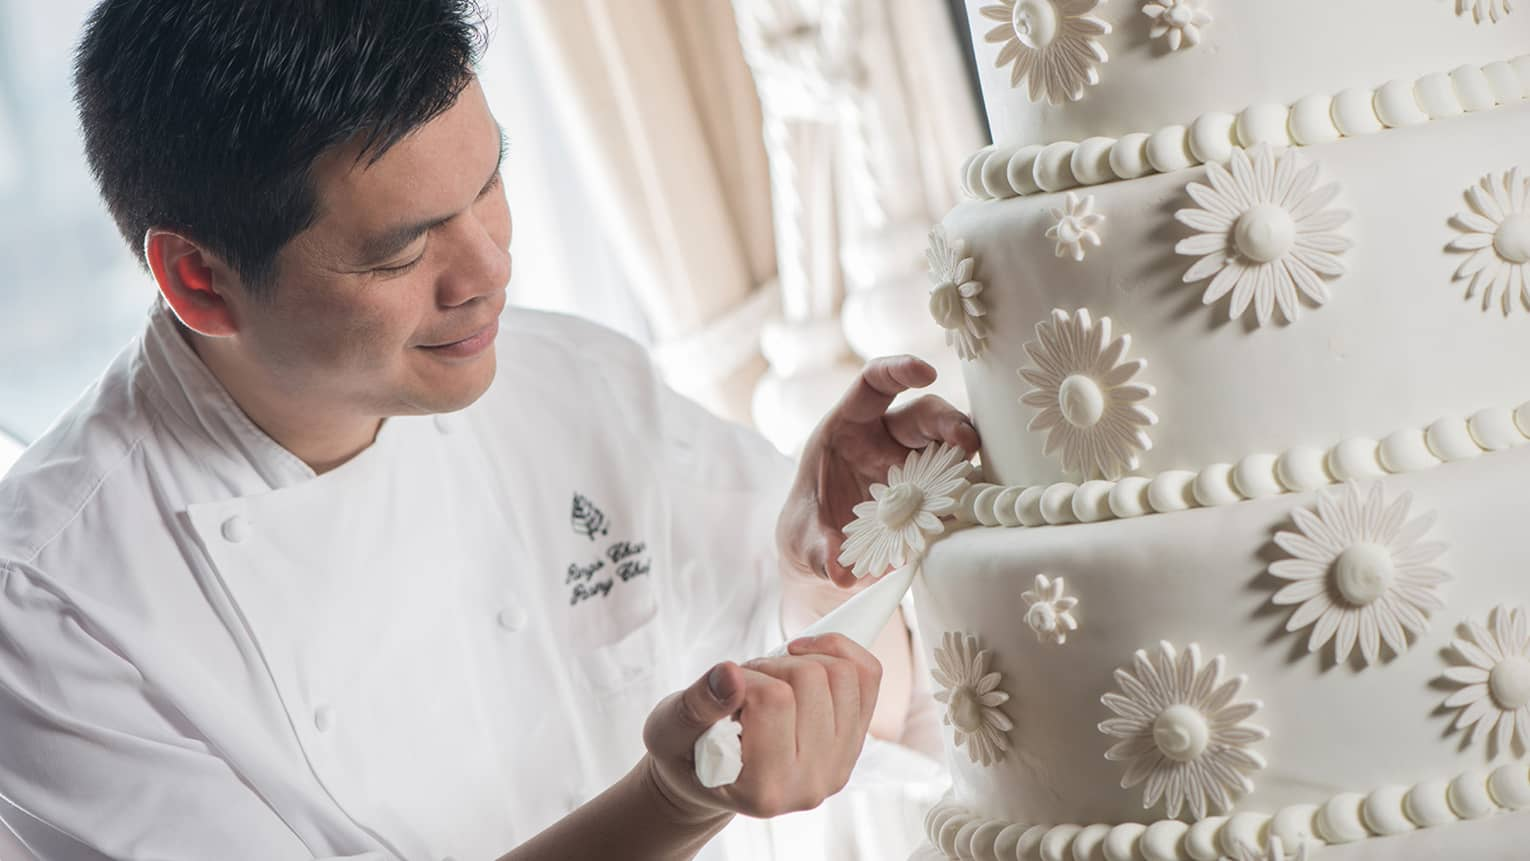 Pastry Chef Ringo Chan decorates icing of large tiered wedding cake